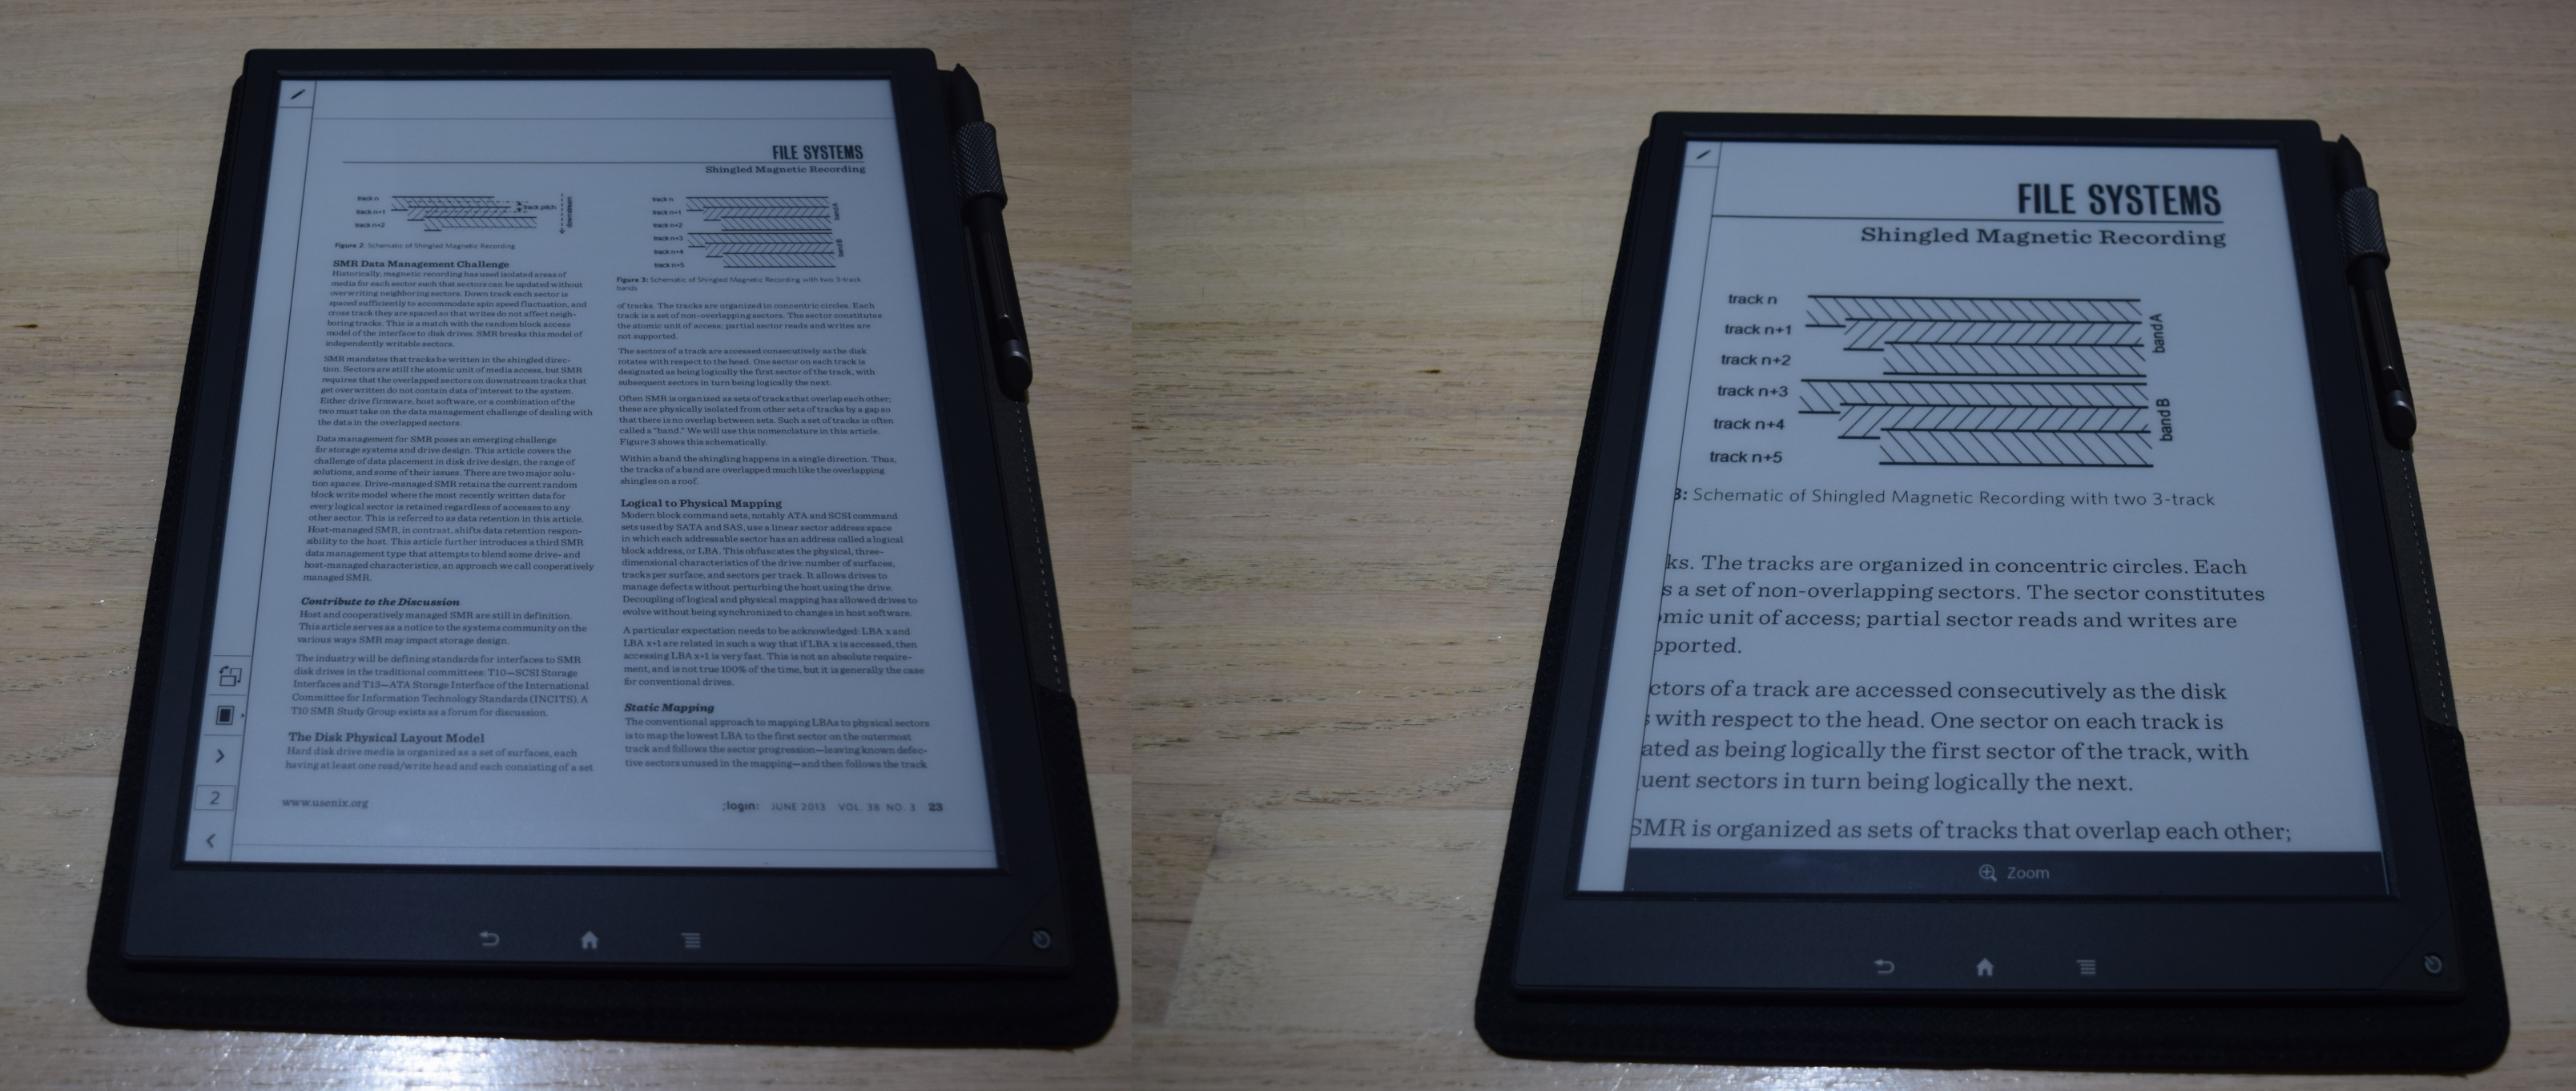 Software and UI Aspects - Sony Digital Paper System DPT-S1